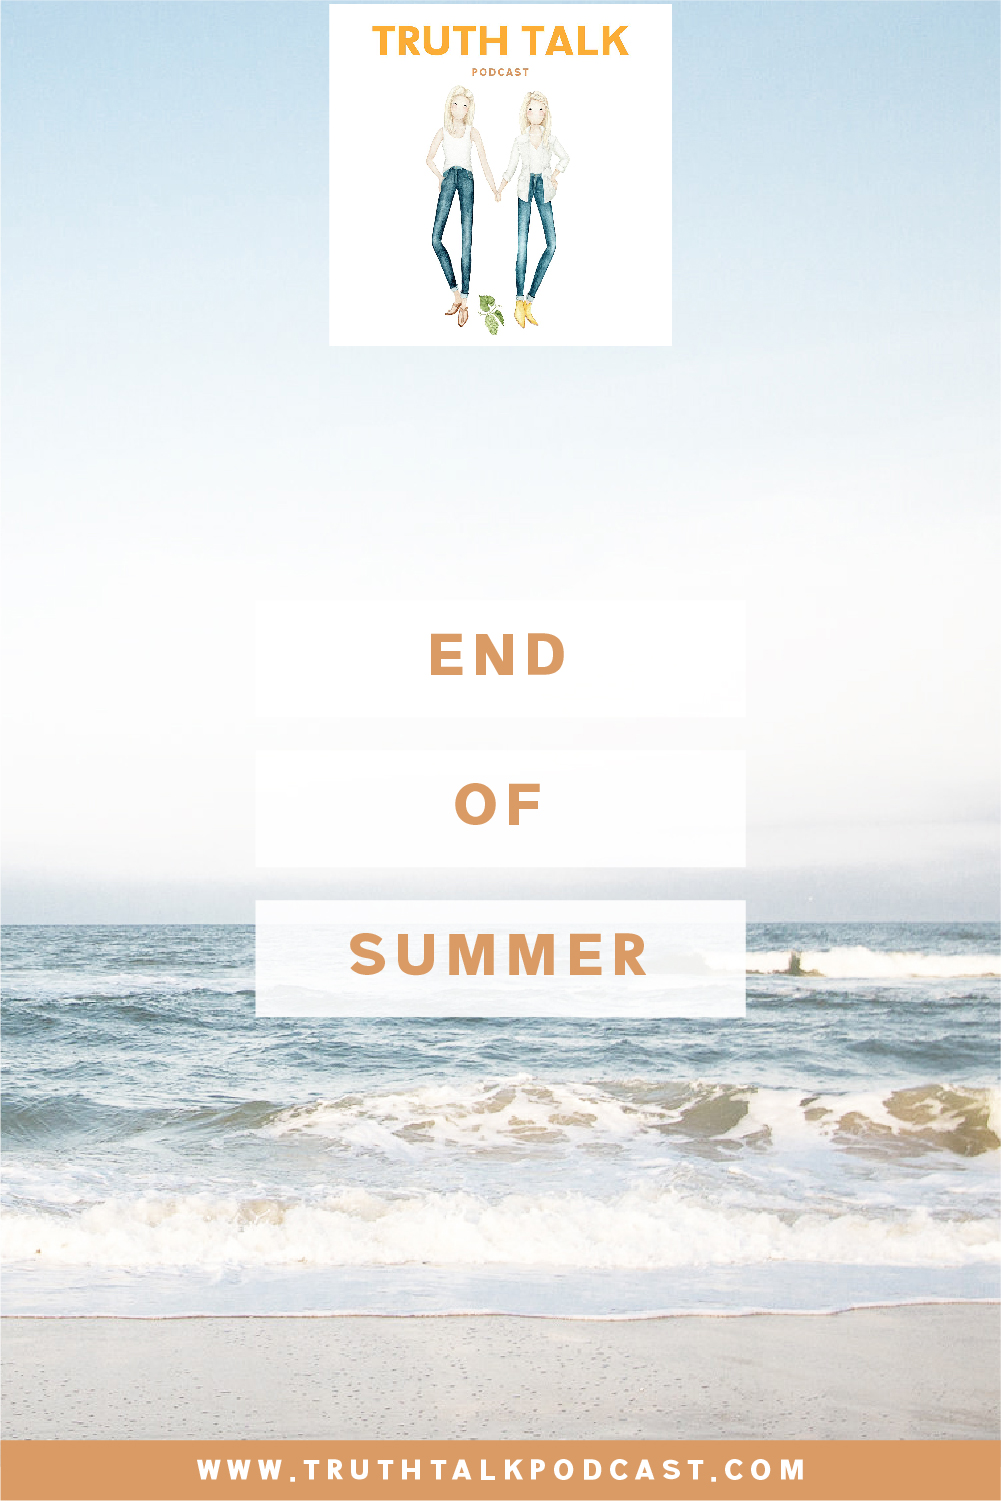 End of Summer #truthtalkpodcast Join us for another Truth Talk Podcast Episode as we wrap up summer while trying to maintain our dignity.  Or sanity.  Or something.  Let's face it, being around our children 24/7 is a challenge.  A fun and special challenge, for sure.  But still a challenge.  And we are almost to the finish line!  This episode will hopefully make you smile as you hear our sister banter, and also make you feel that you are not alone on this journey!